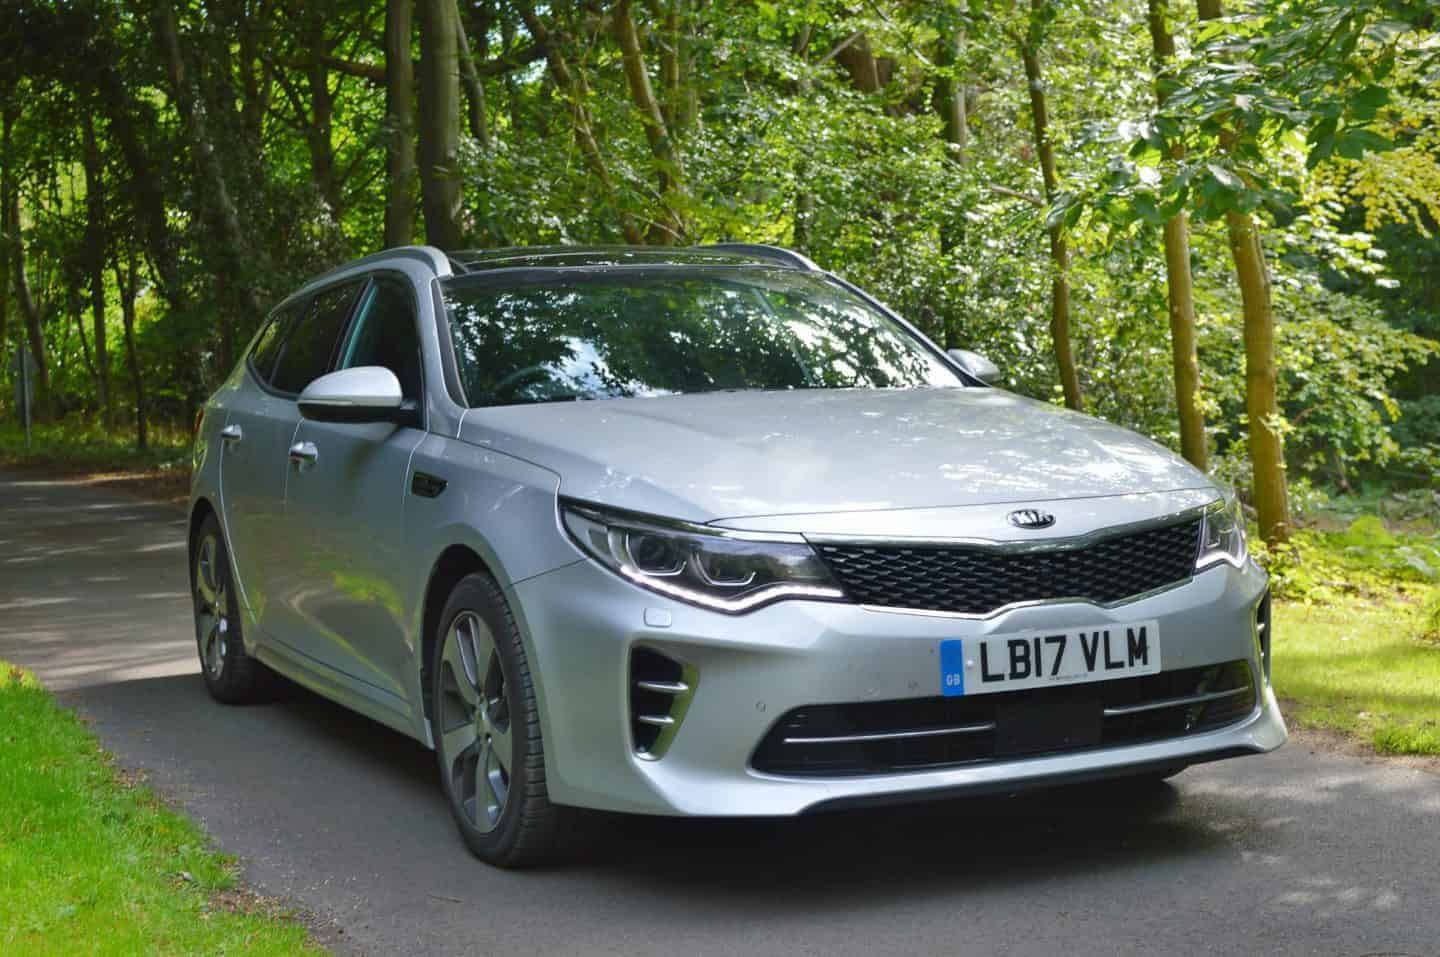 Kia Optima Sportswagon 'GT-Line S' model